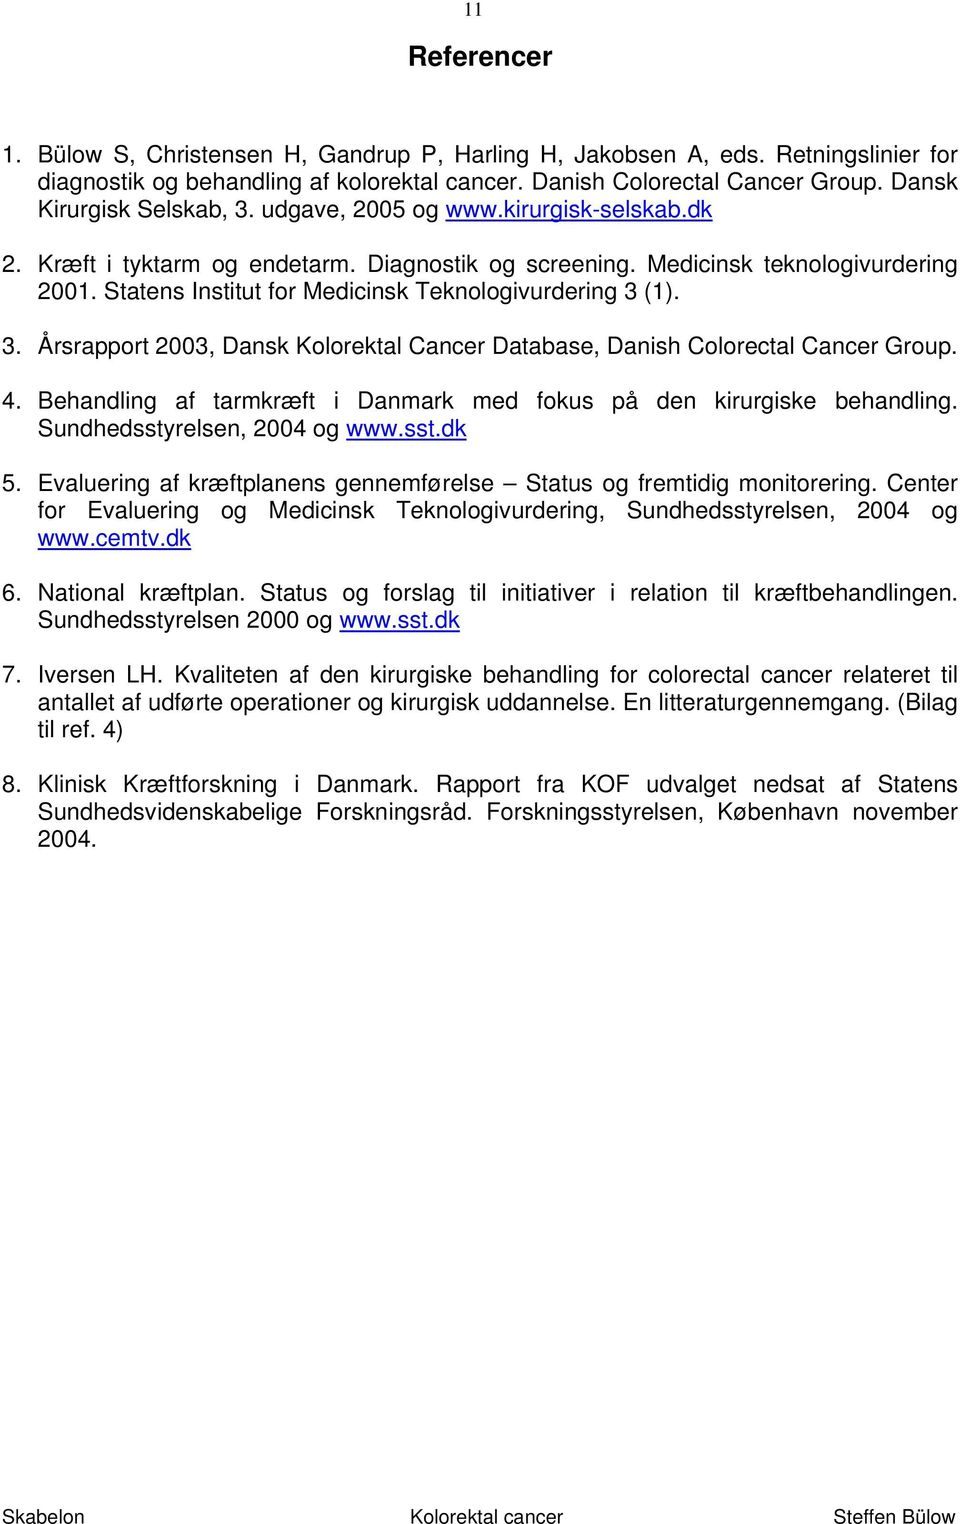 Statens Institut for Medicinsk Teknologivurdering 3 (1). 3. Årsrapport 2003, Dansk Kolorektal Cancer Database, Danish Colorectal Cancer Group. 4.